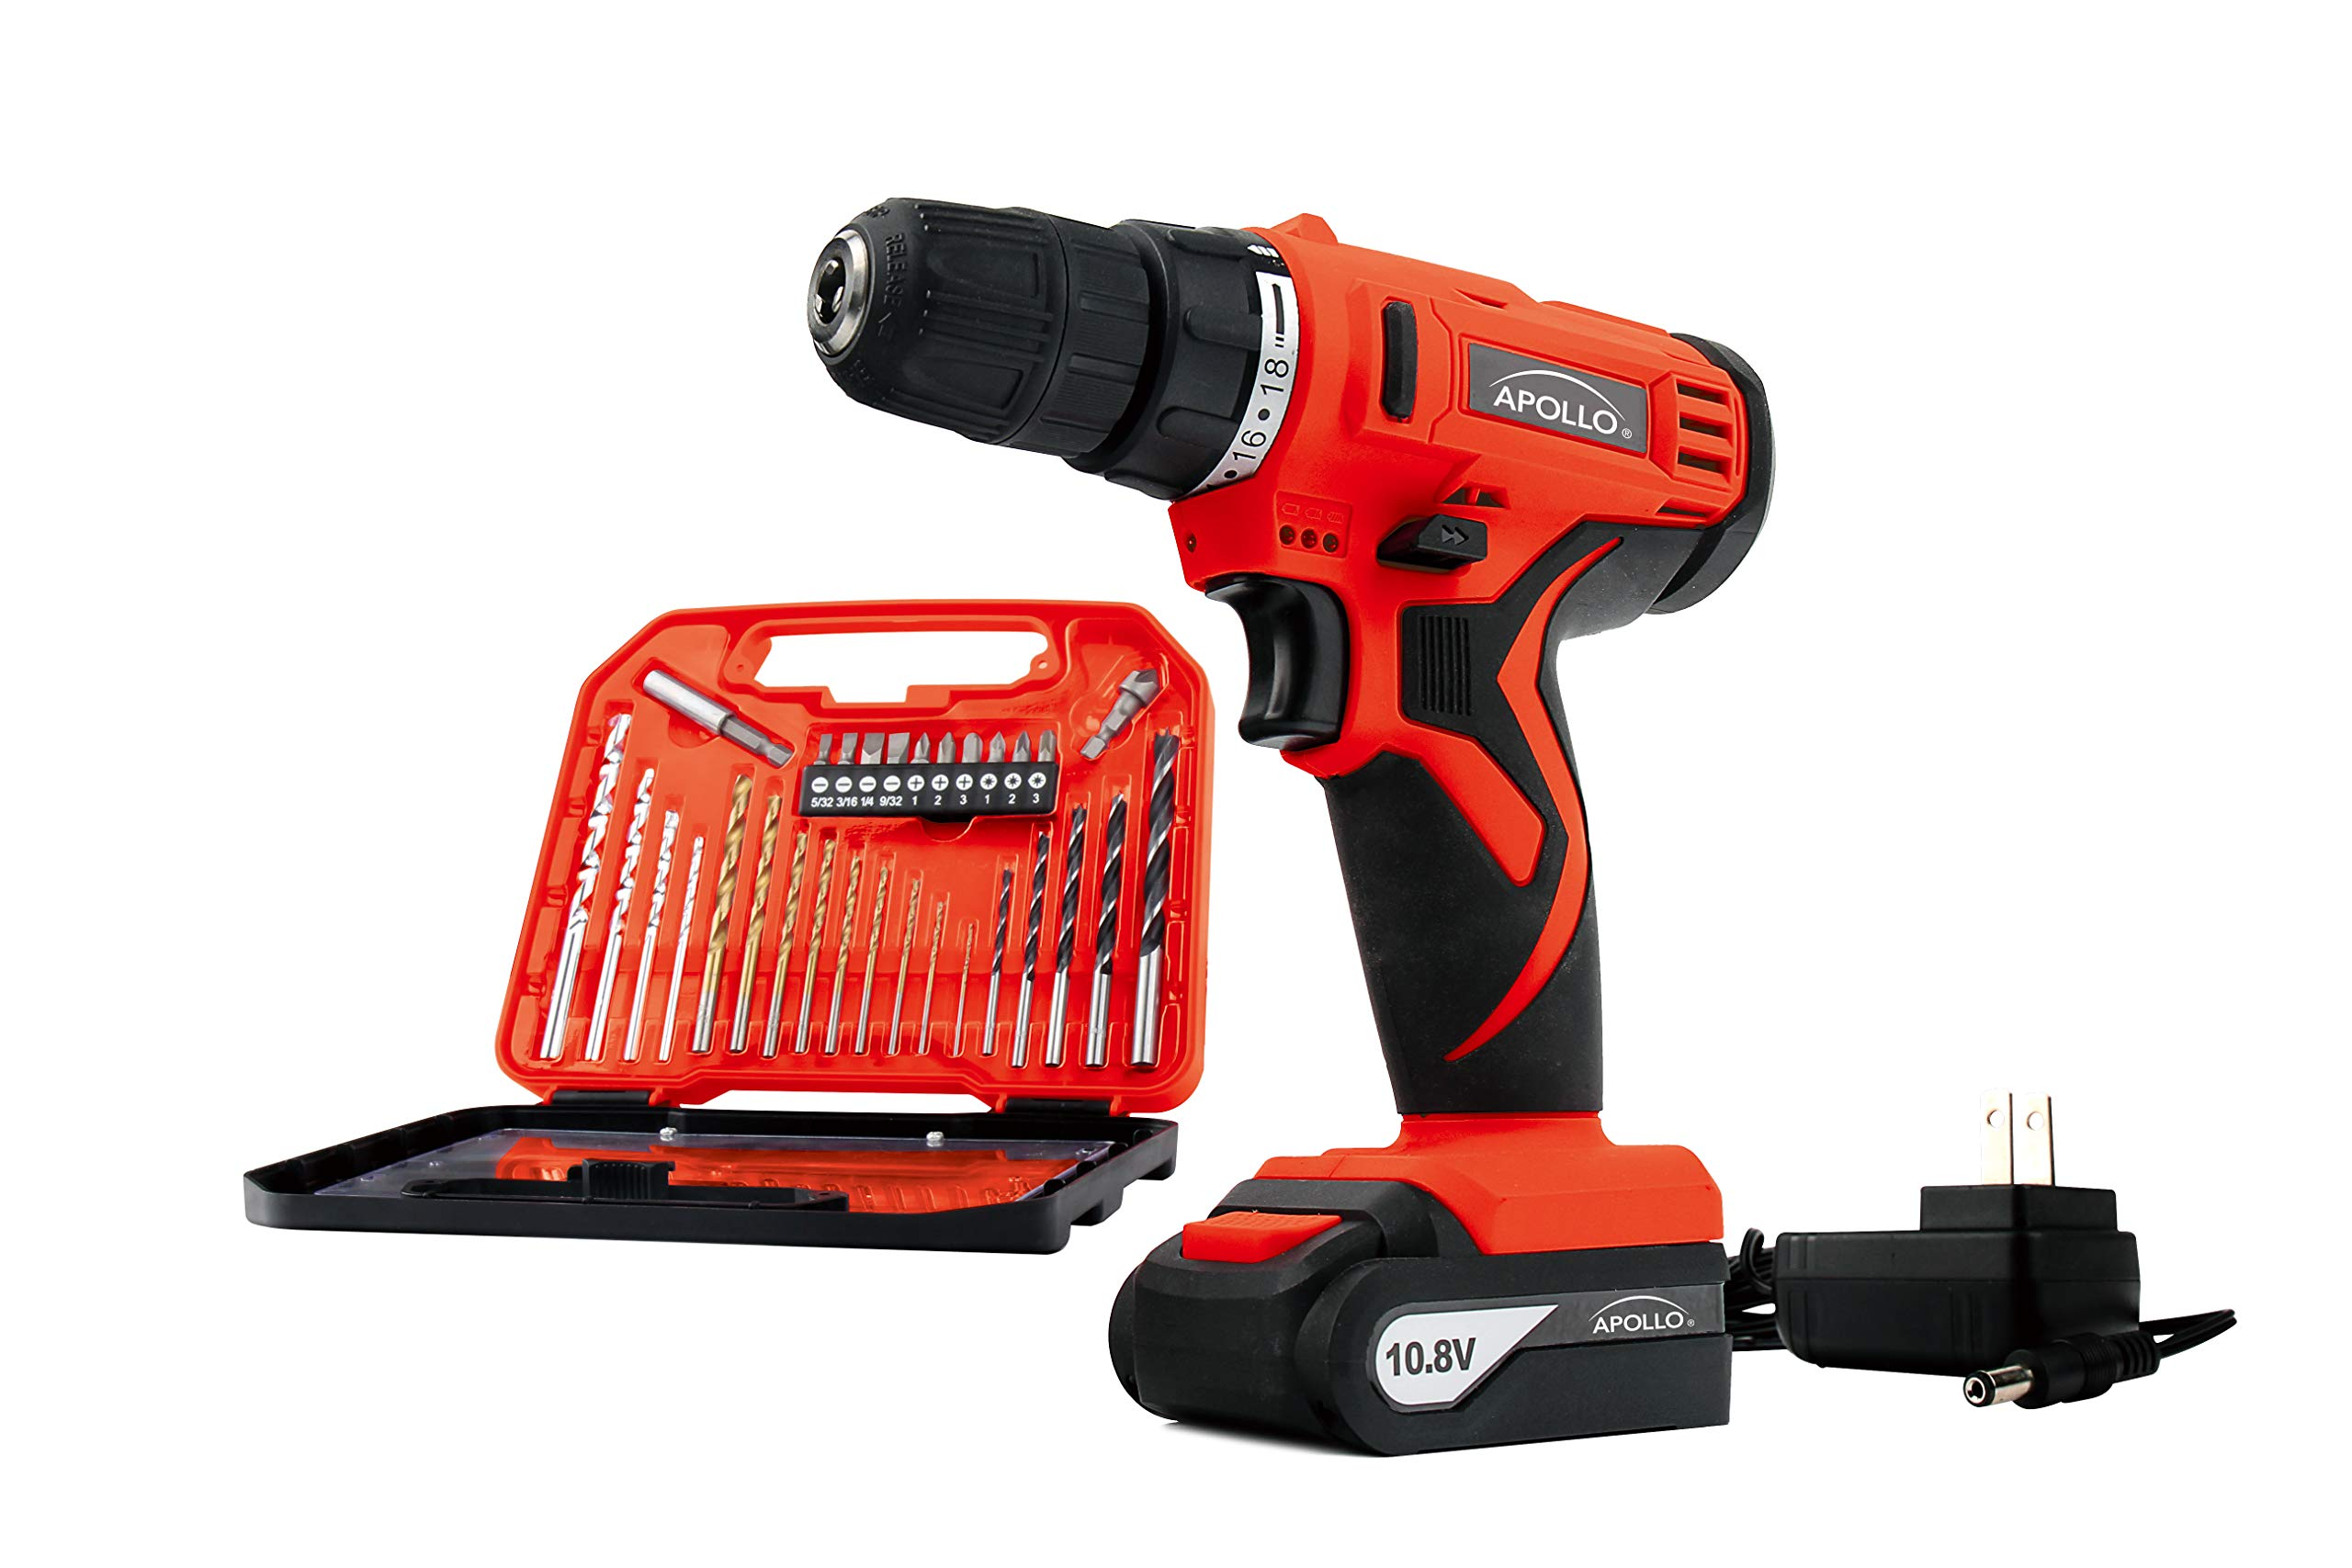 Apollo Tools DT4937 Powerful 10.8 V Lithium-Ion Cordless Drill with 30 Piece Drill Bit Set, Red